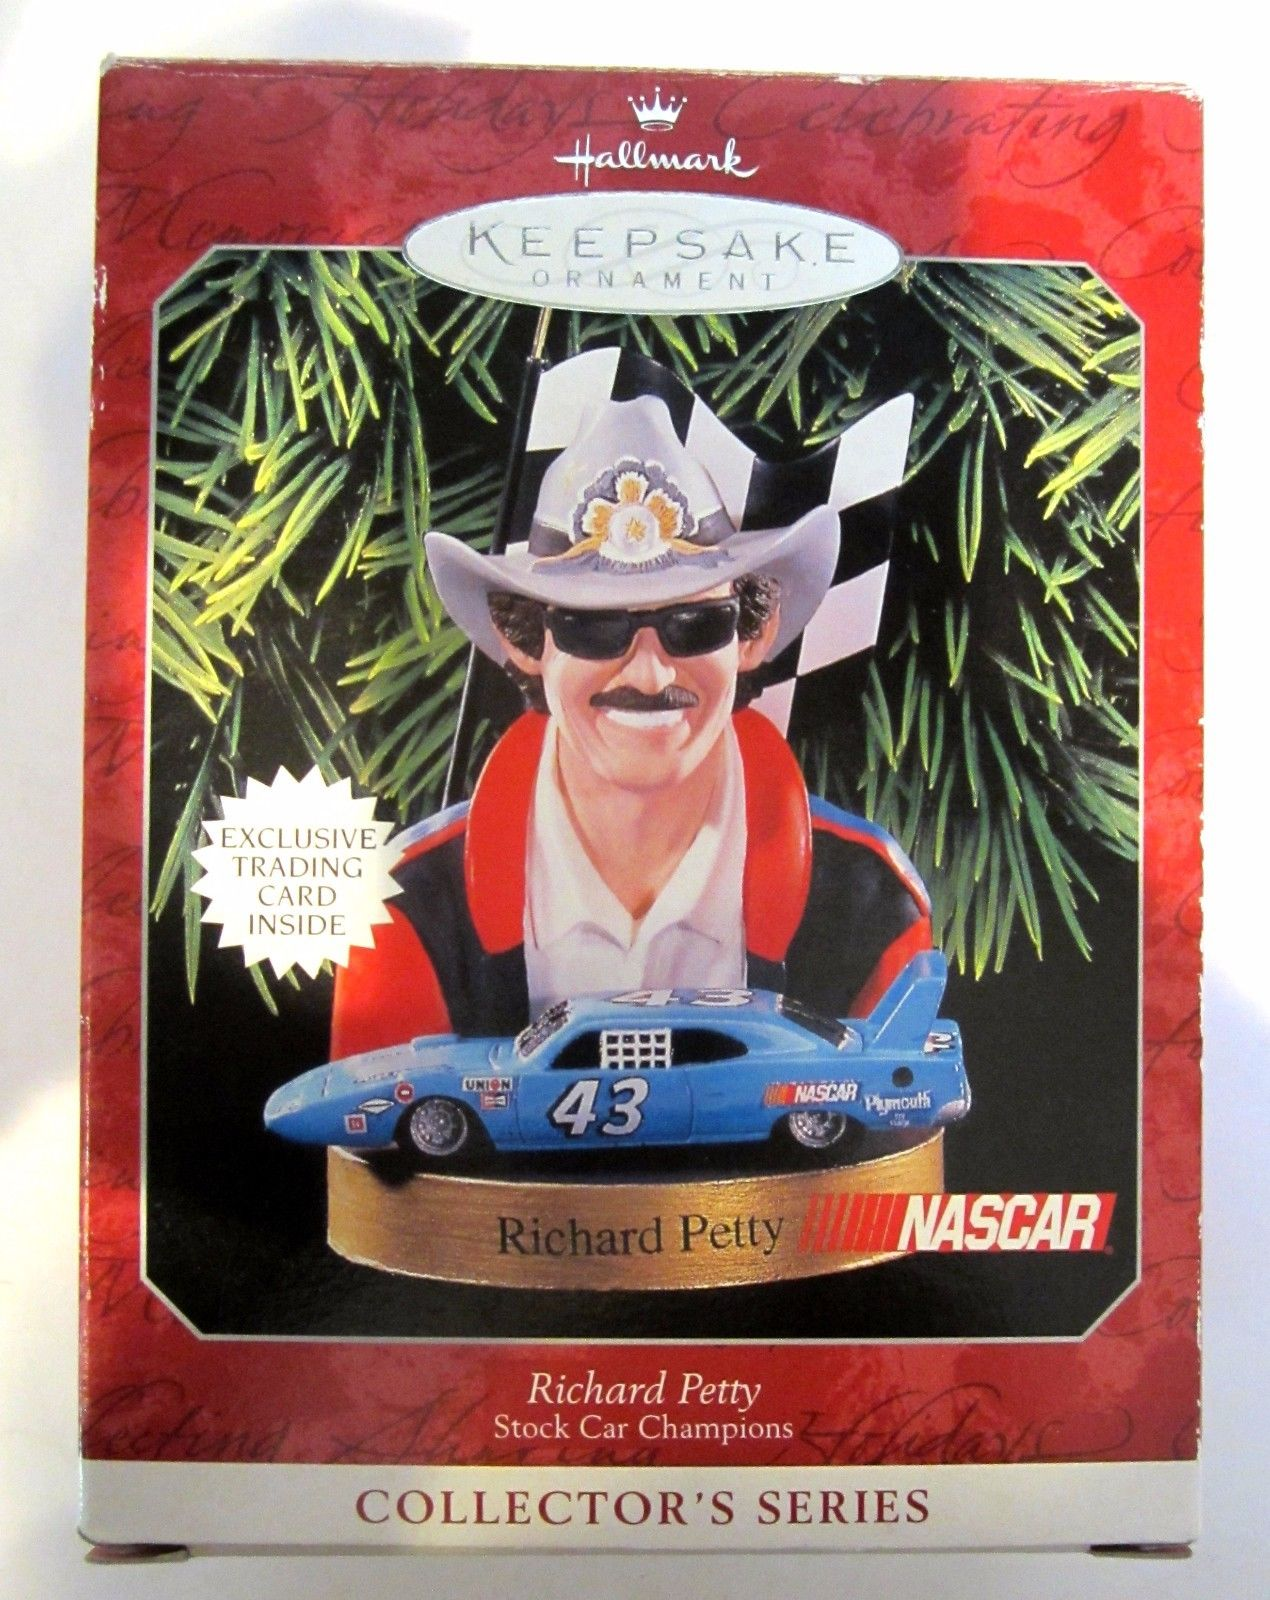 1998 Richard Petty Christmas Ornament by Hallmark